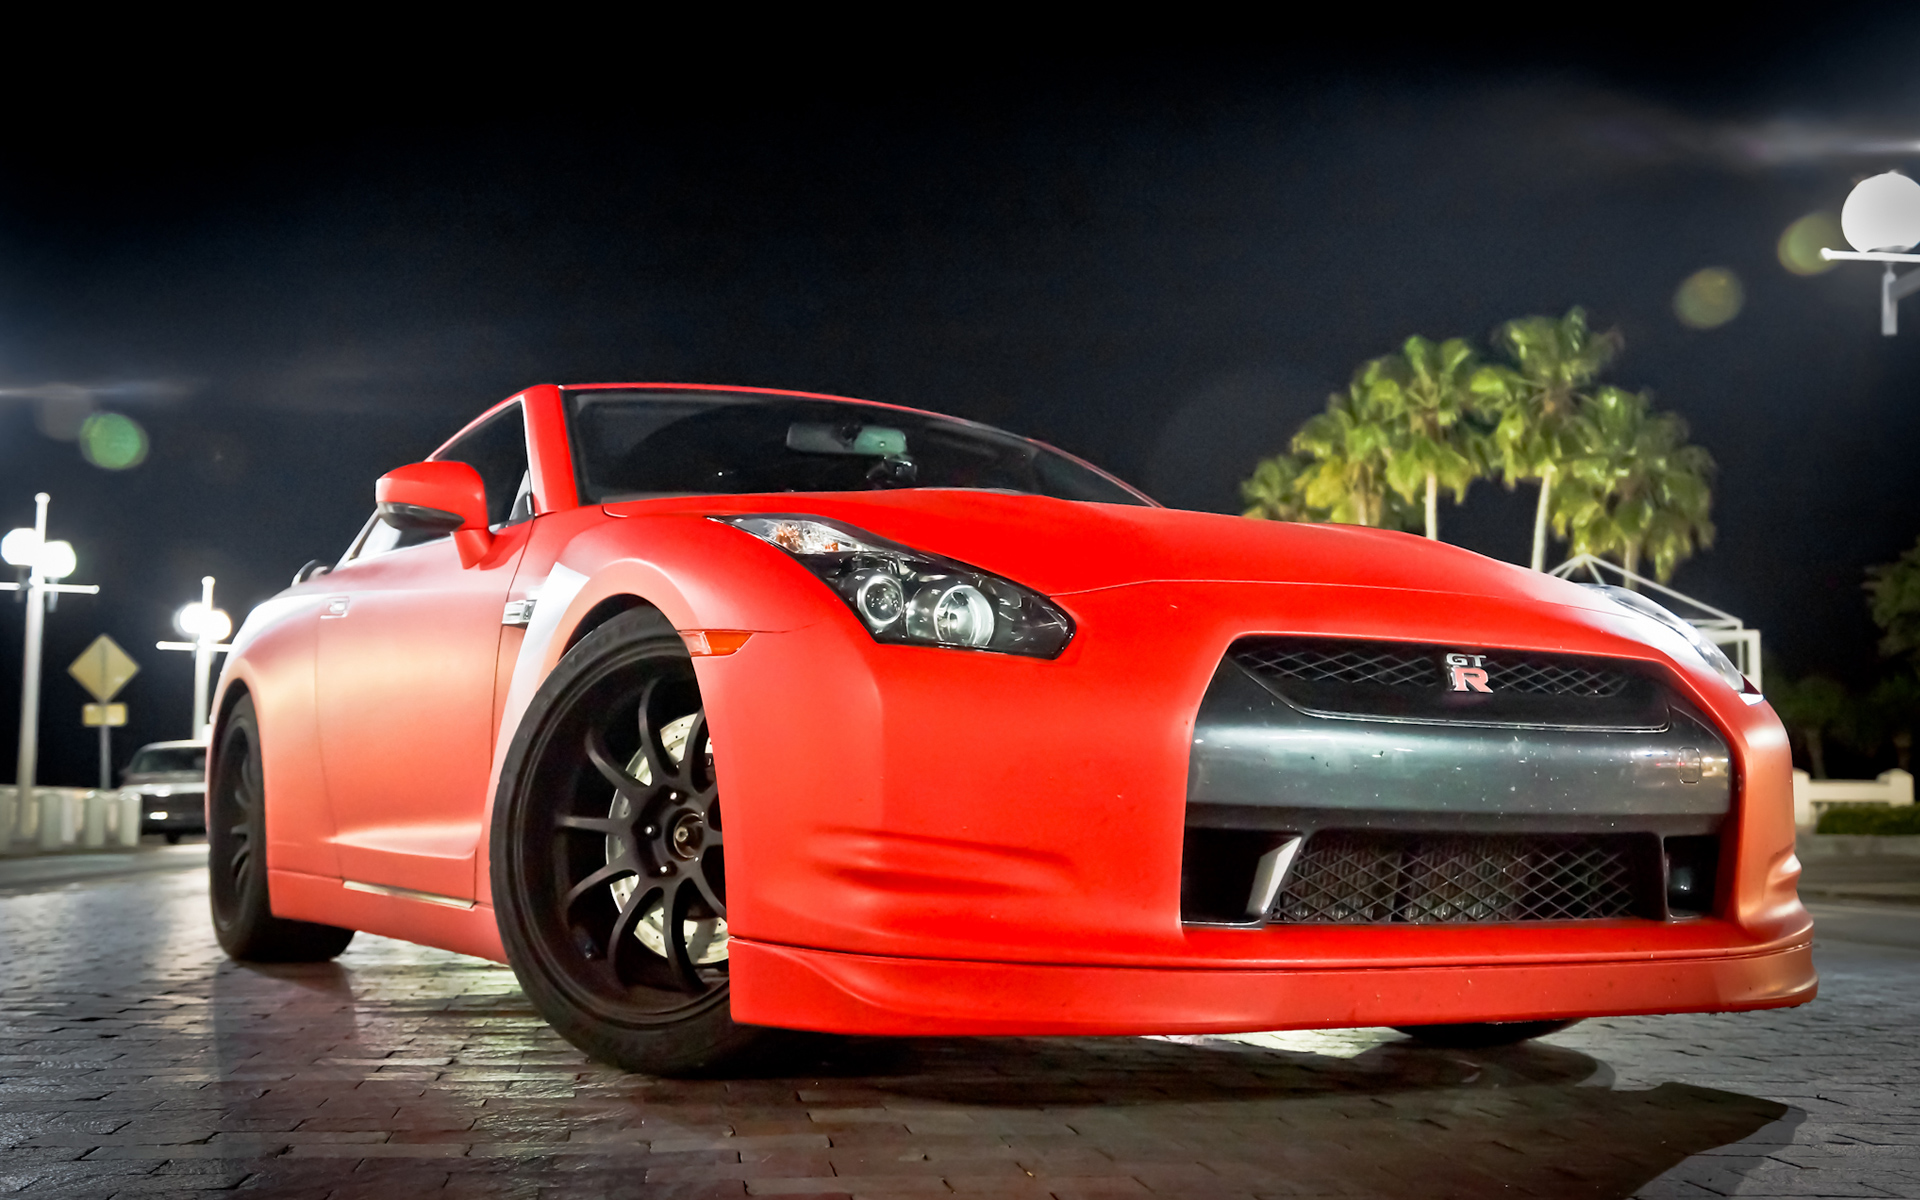 Related For Amazing GTR Wallpaper 1920x1200